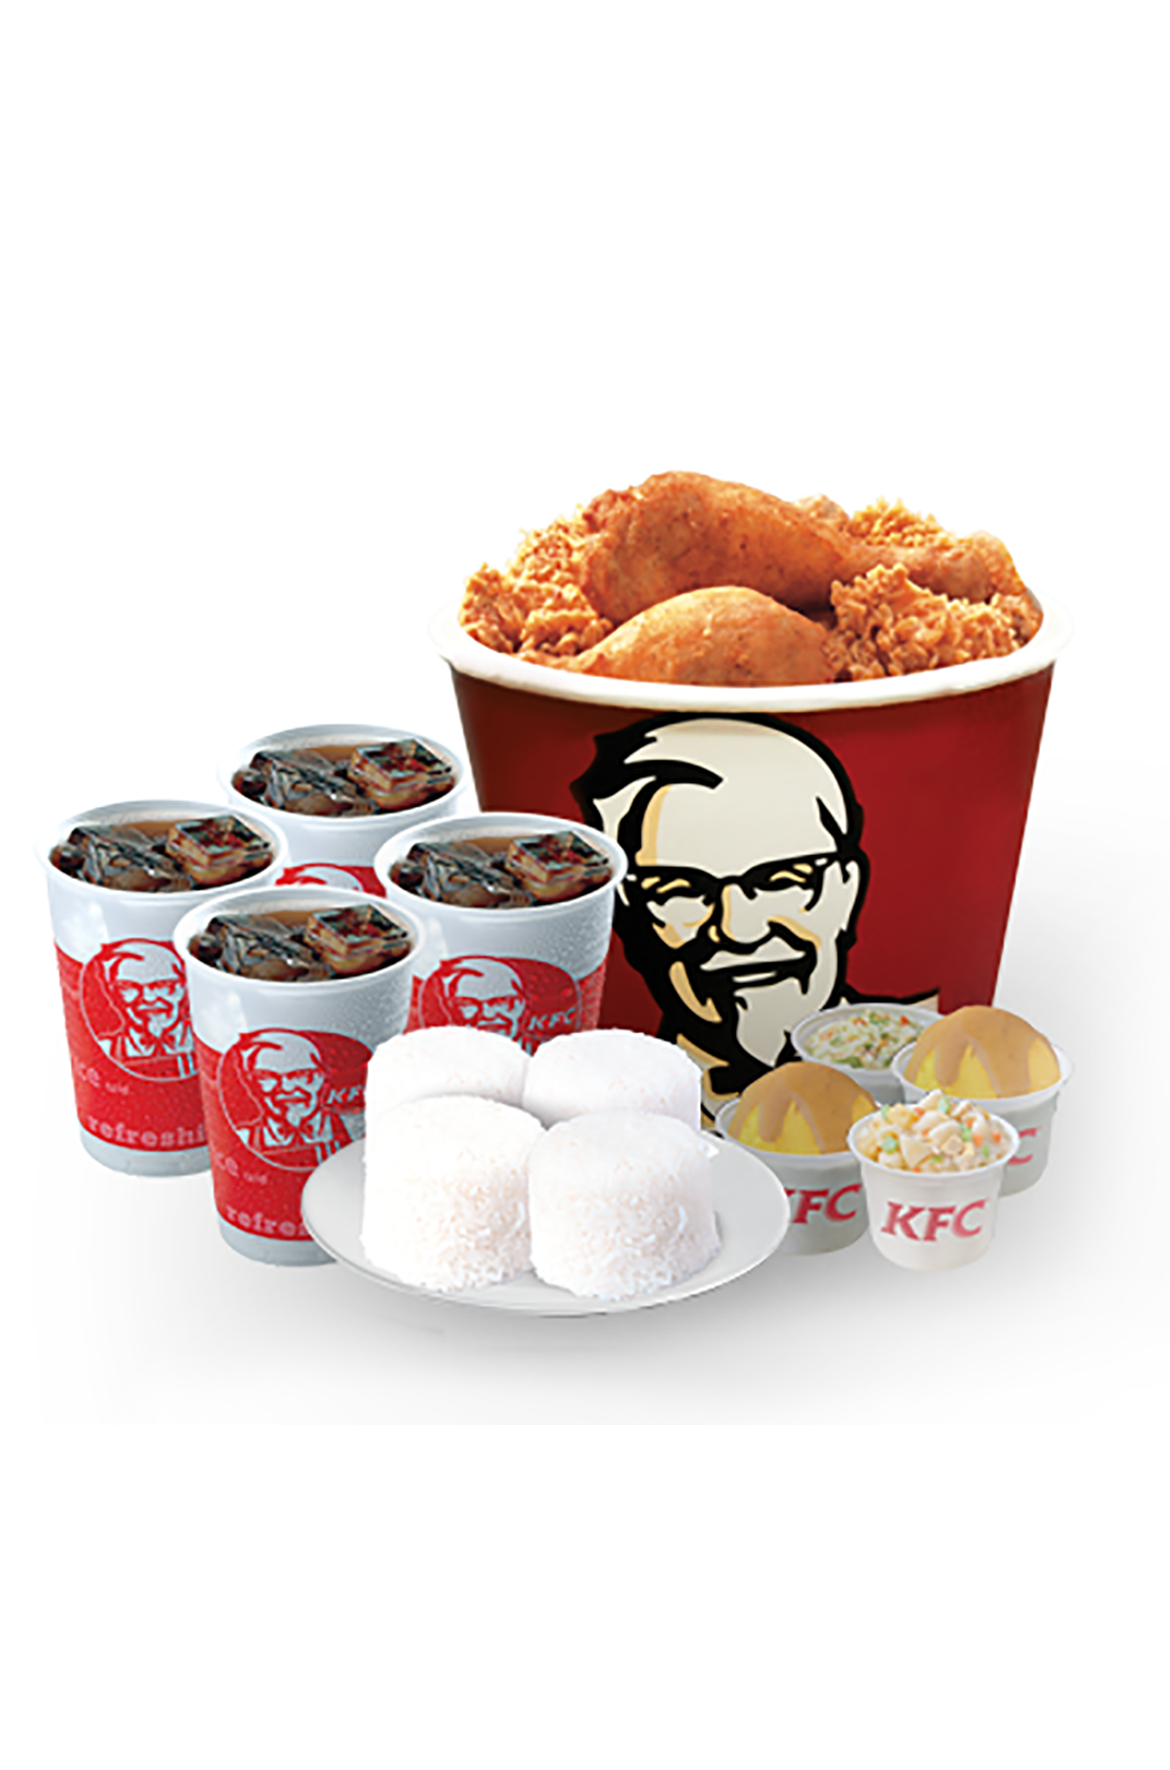 Food; People; Community; Environment; Nutrition. KFC is proud of the improvements they have made to their high quality food and remain committed to improving the overall nutritional makeup of its products.